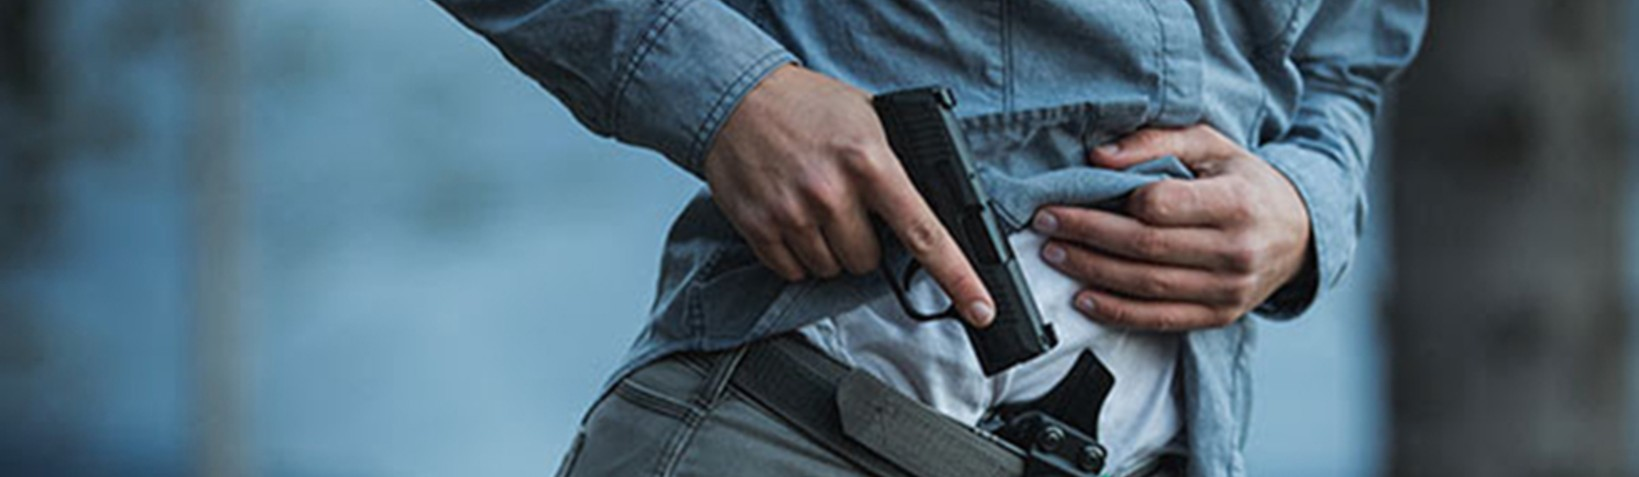 <b>California Penal Code 25400 PC: </b><br>The Law on Carrying a Concealed Firearm